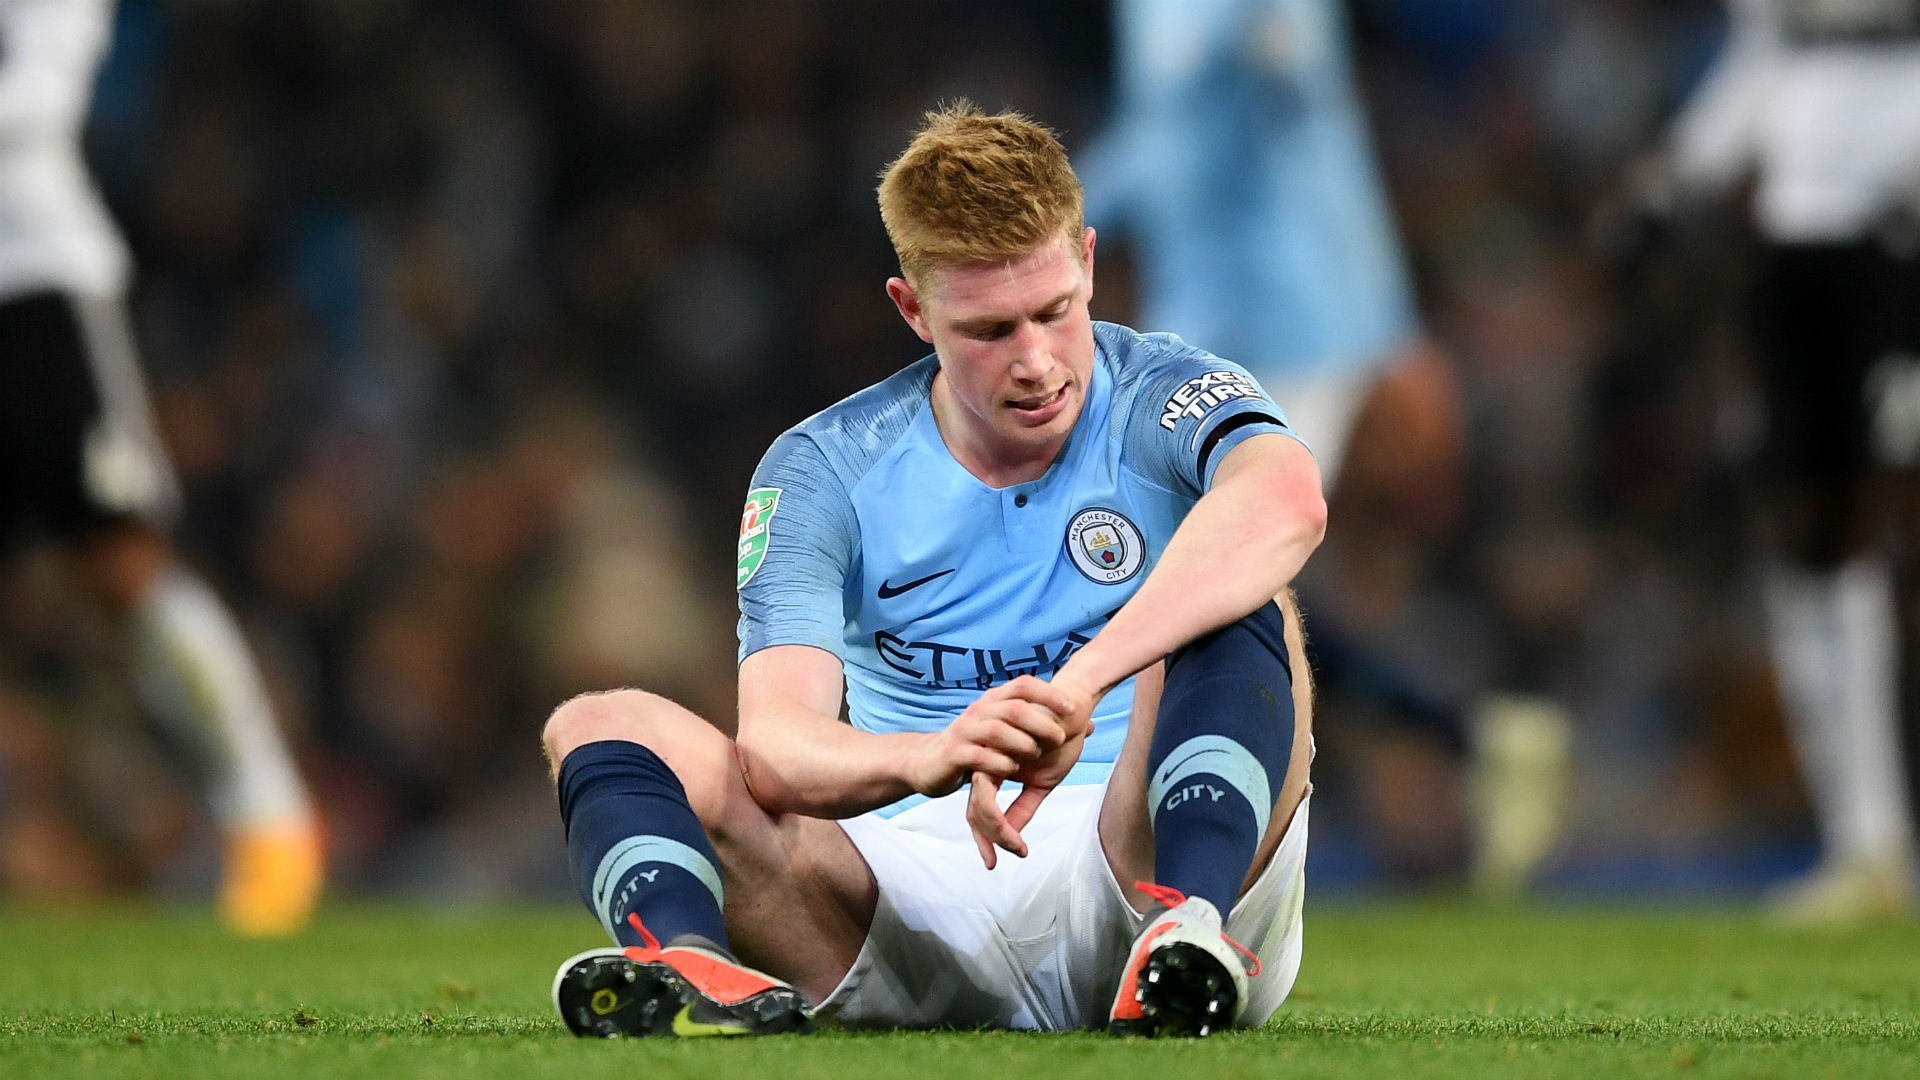 Manchester City star succinctly points out how English media helps 'fuel racism'